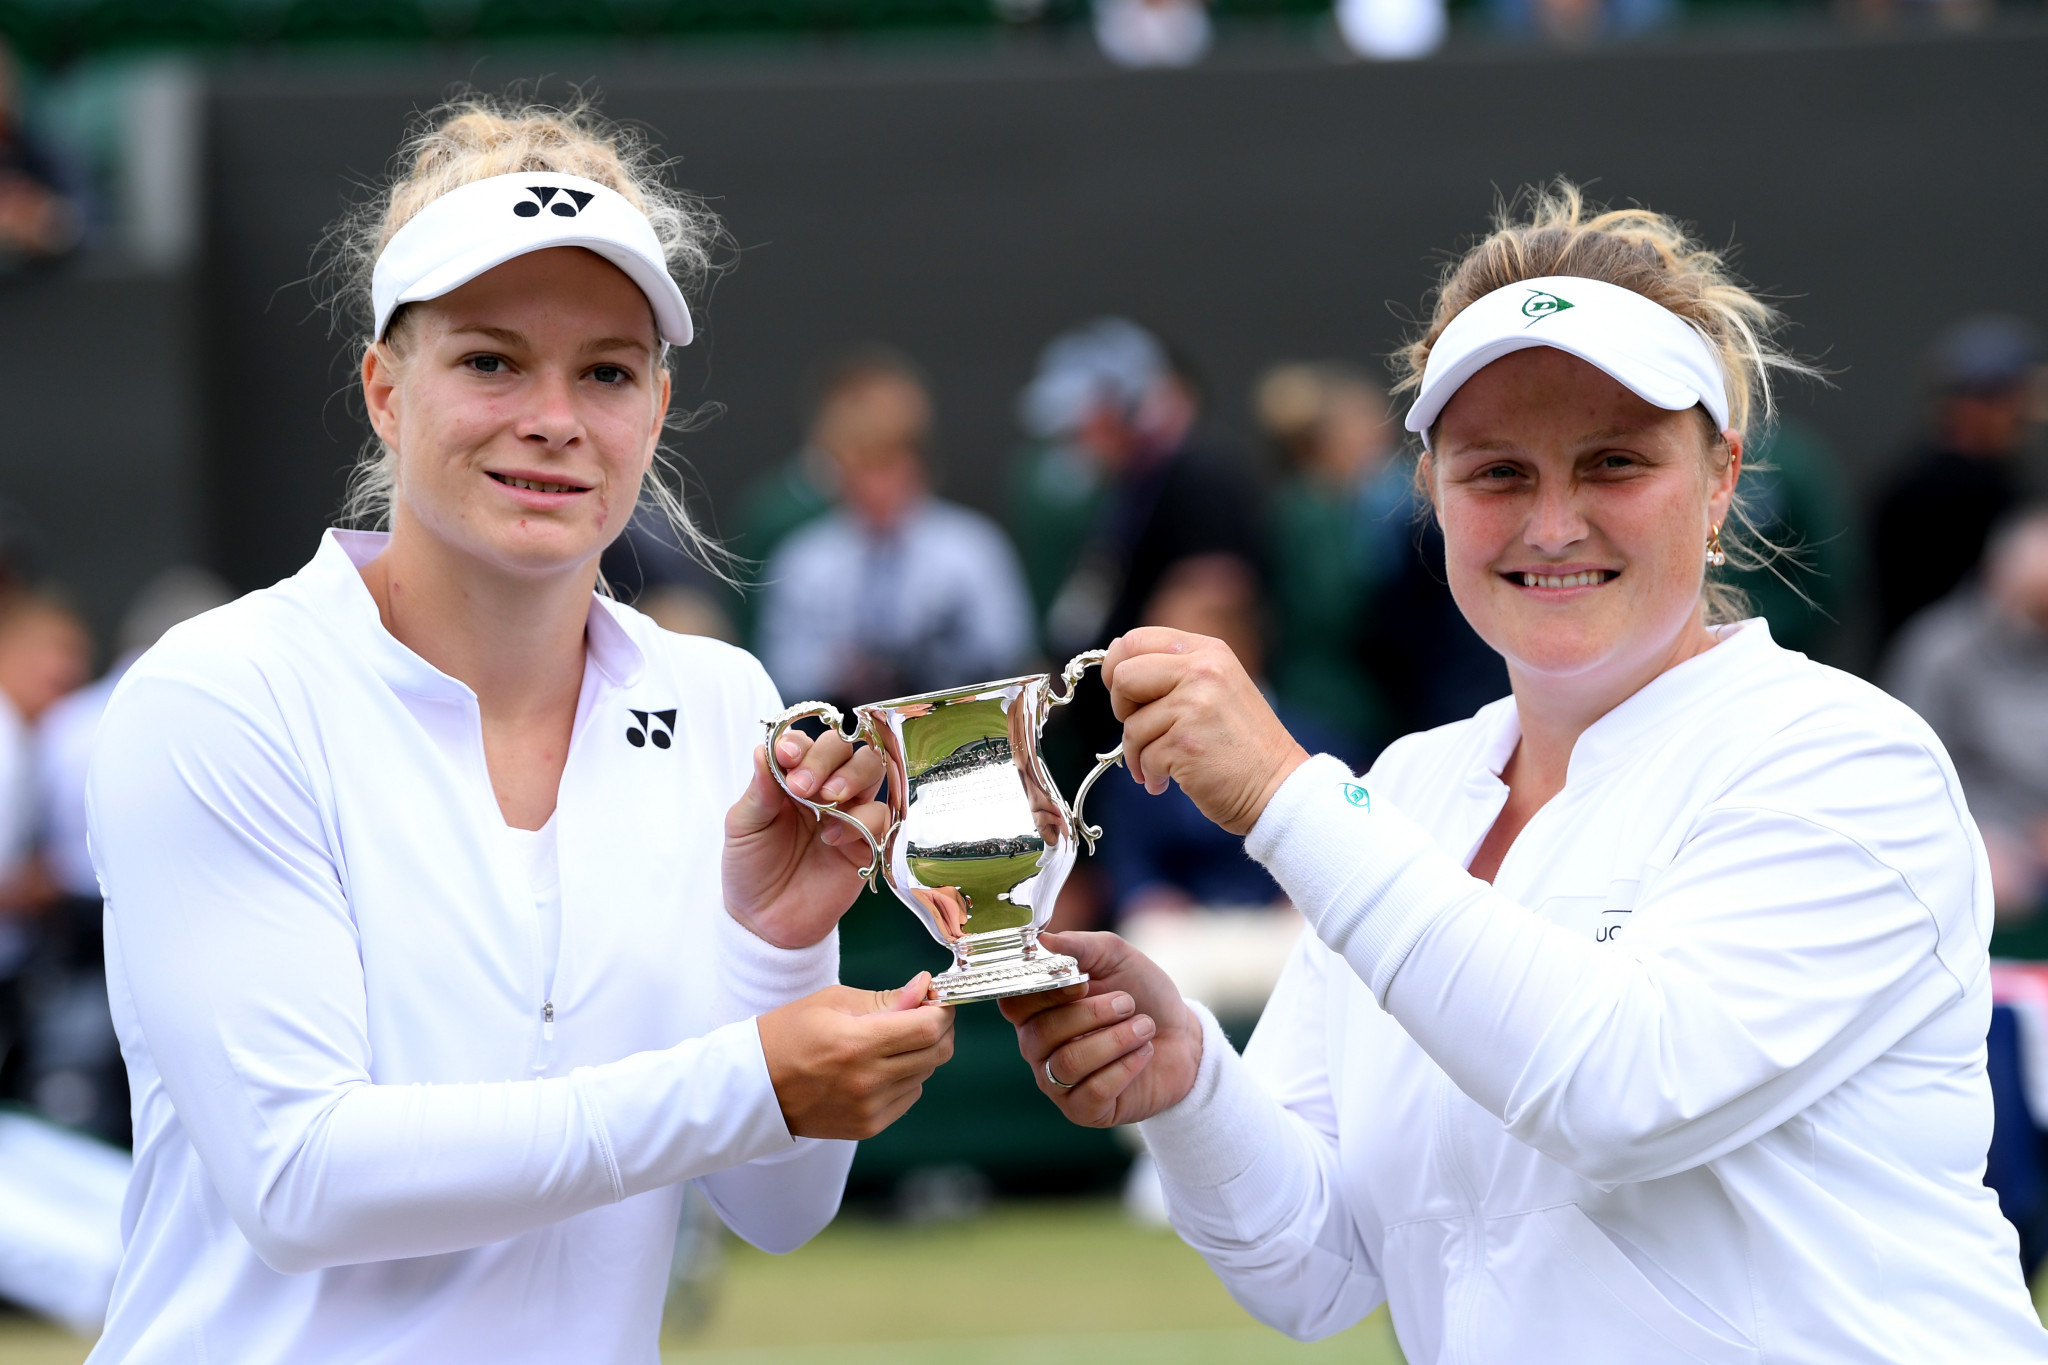 Diede De Groot and Aniek Van Koot of The Netherlands won the women's doubles titles at the UNIQLO Wheelchair Doubles Masters in Orlando having already triumphed at Wimbledon this year ©Getty Images